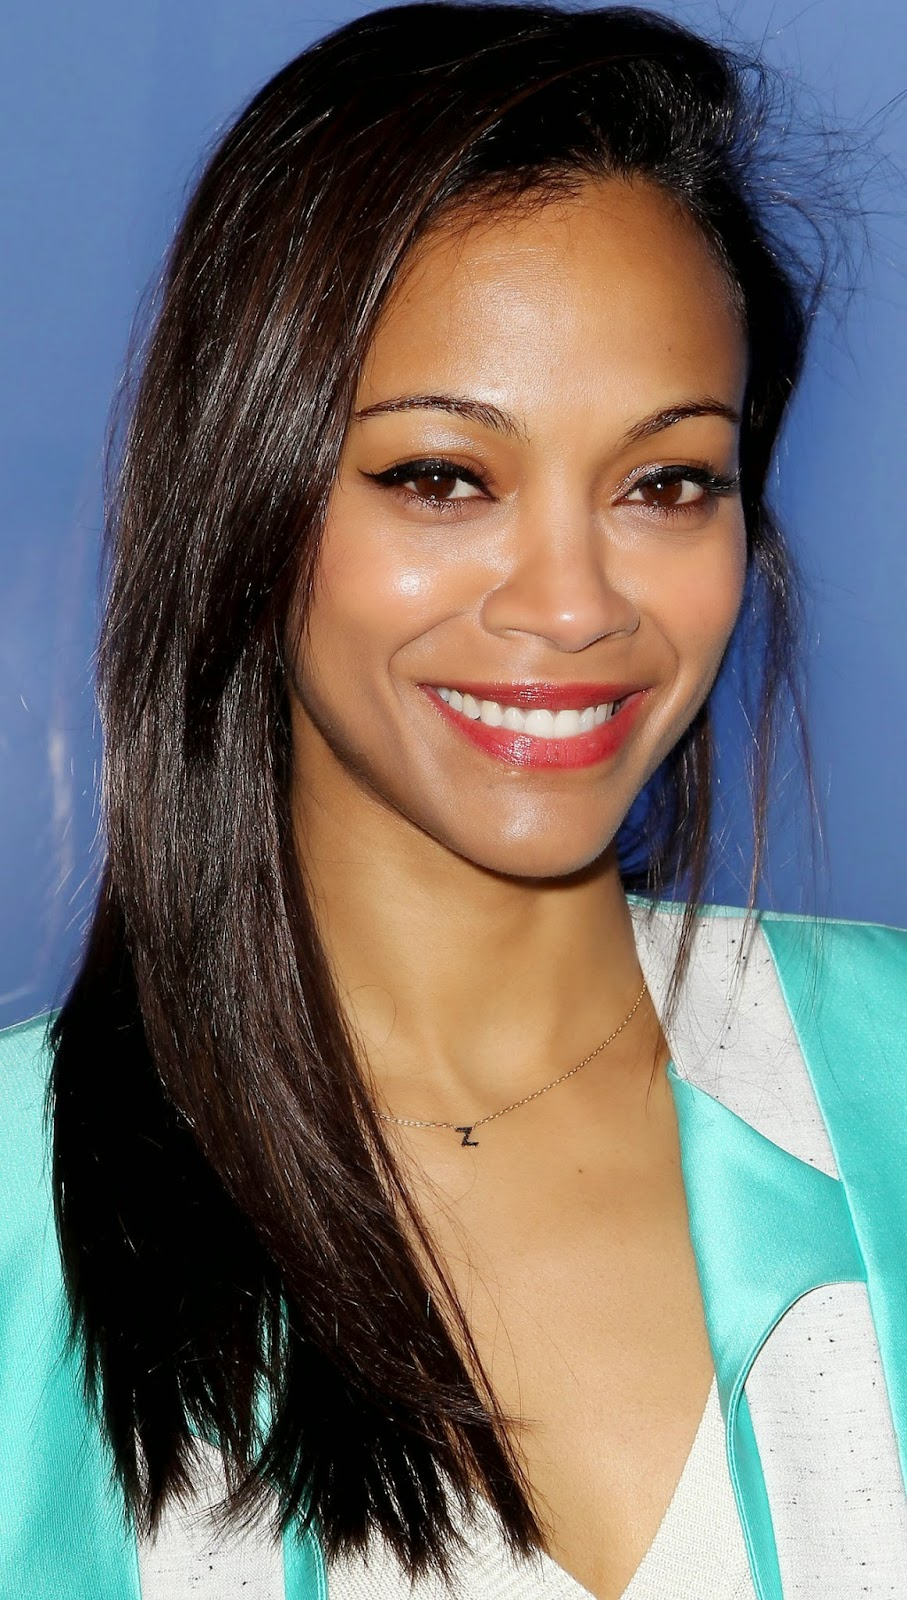 jersey map with Zoe Saldana on 858 Bandon OR United States besides PATH Port Authority Trans Hudson as well 727 Grand Marais MI United States also 1366 Beaufort NC United States additionally Canal Mancha.